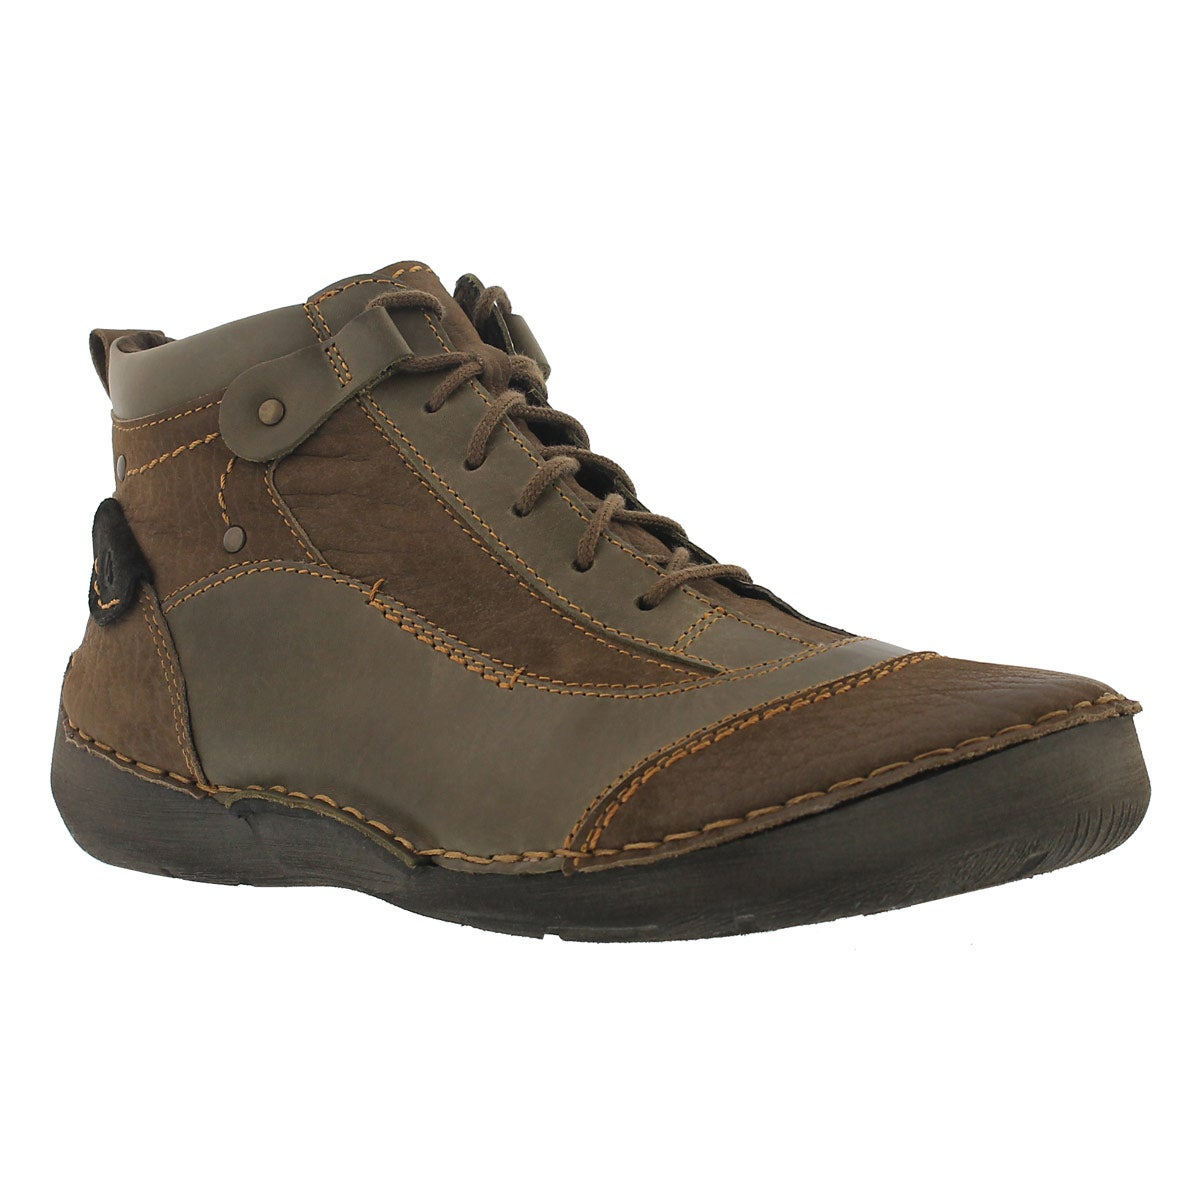 Lds Fergy 04 taupe ankle boot